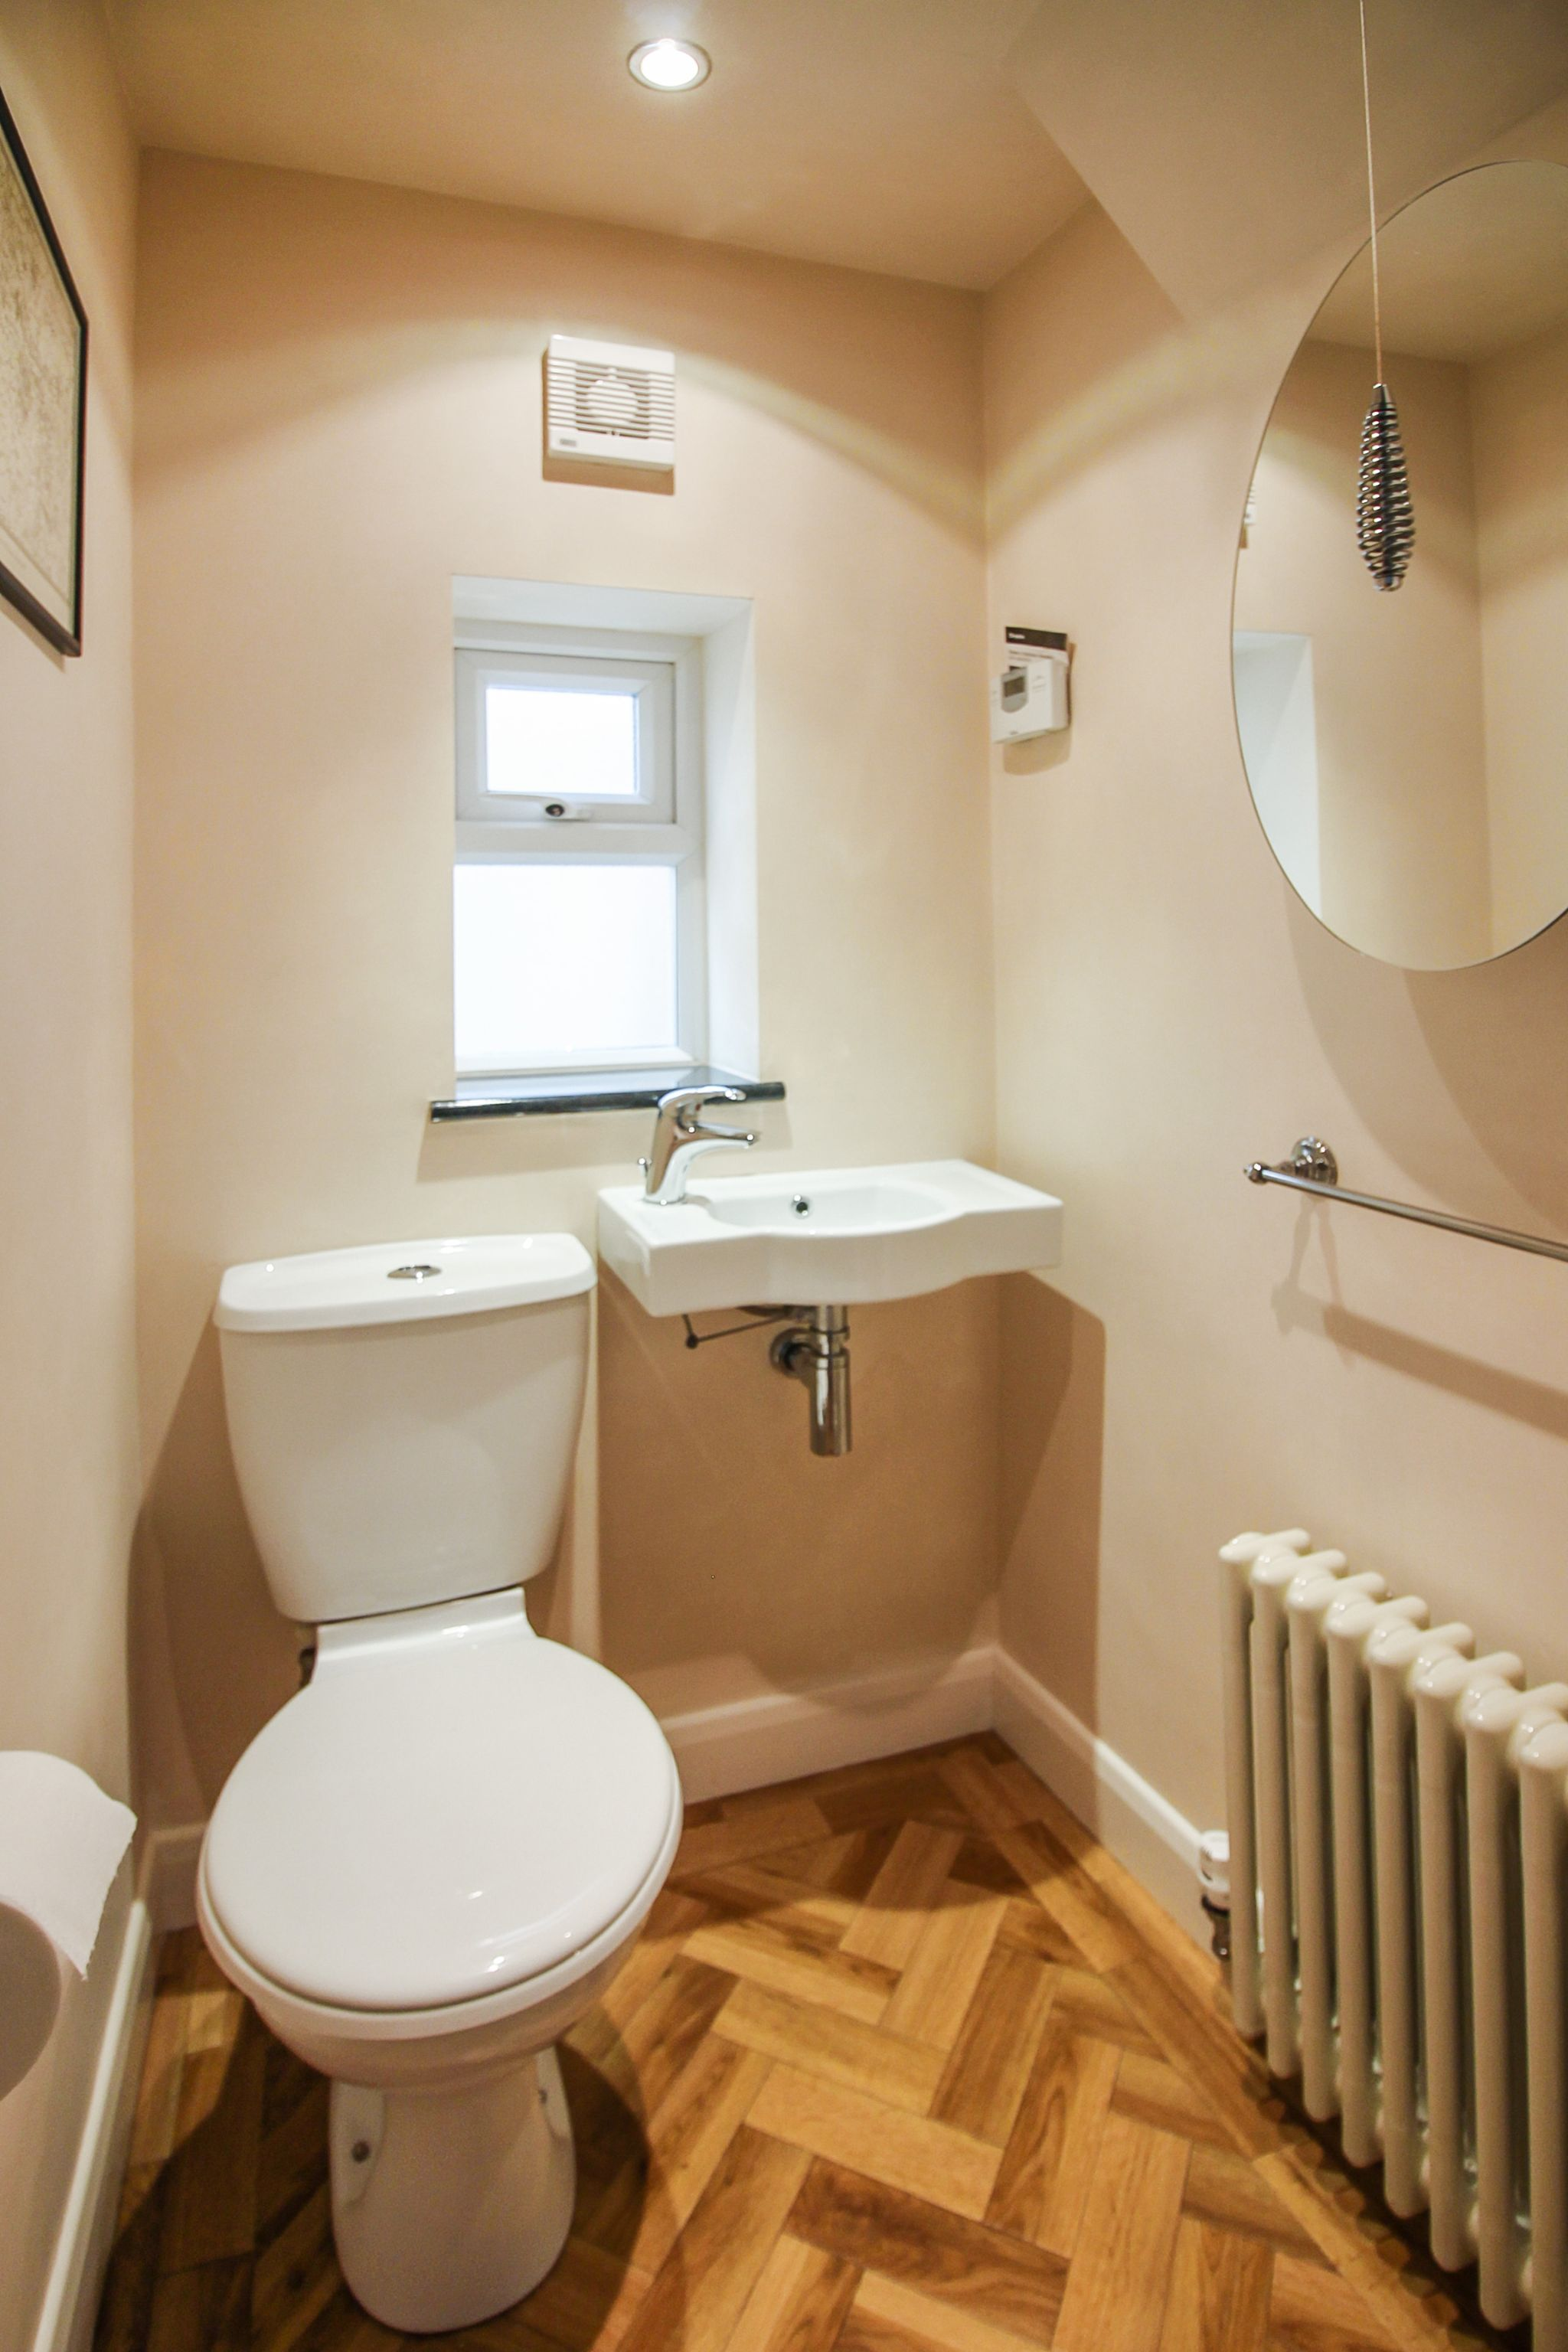 4 bedroom semi-detached house SSTC in Solihull - Photograph 7.